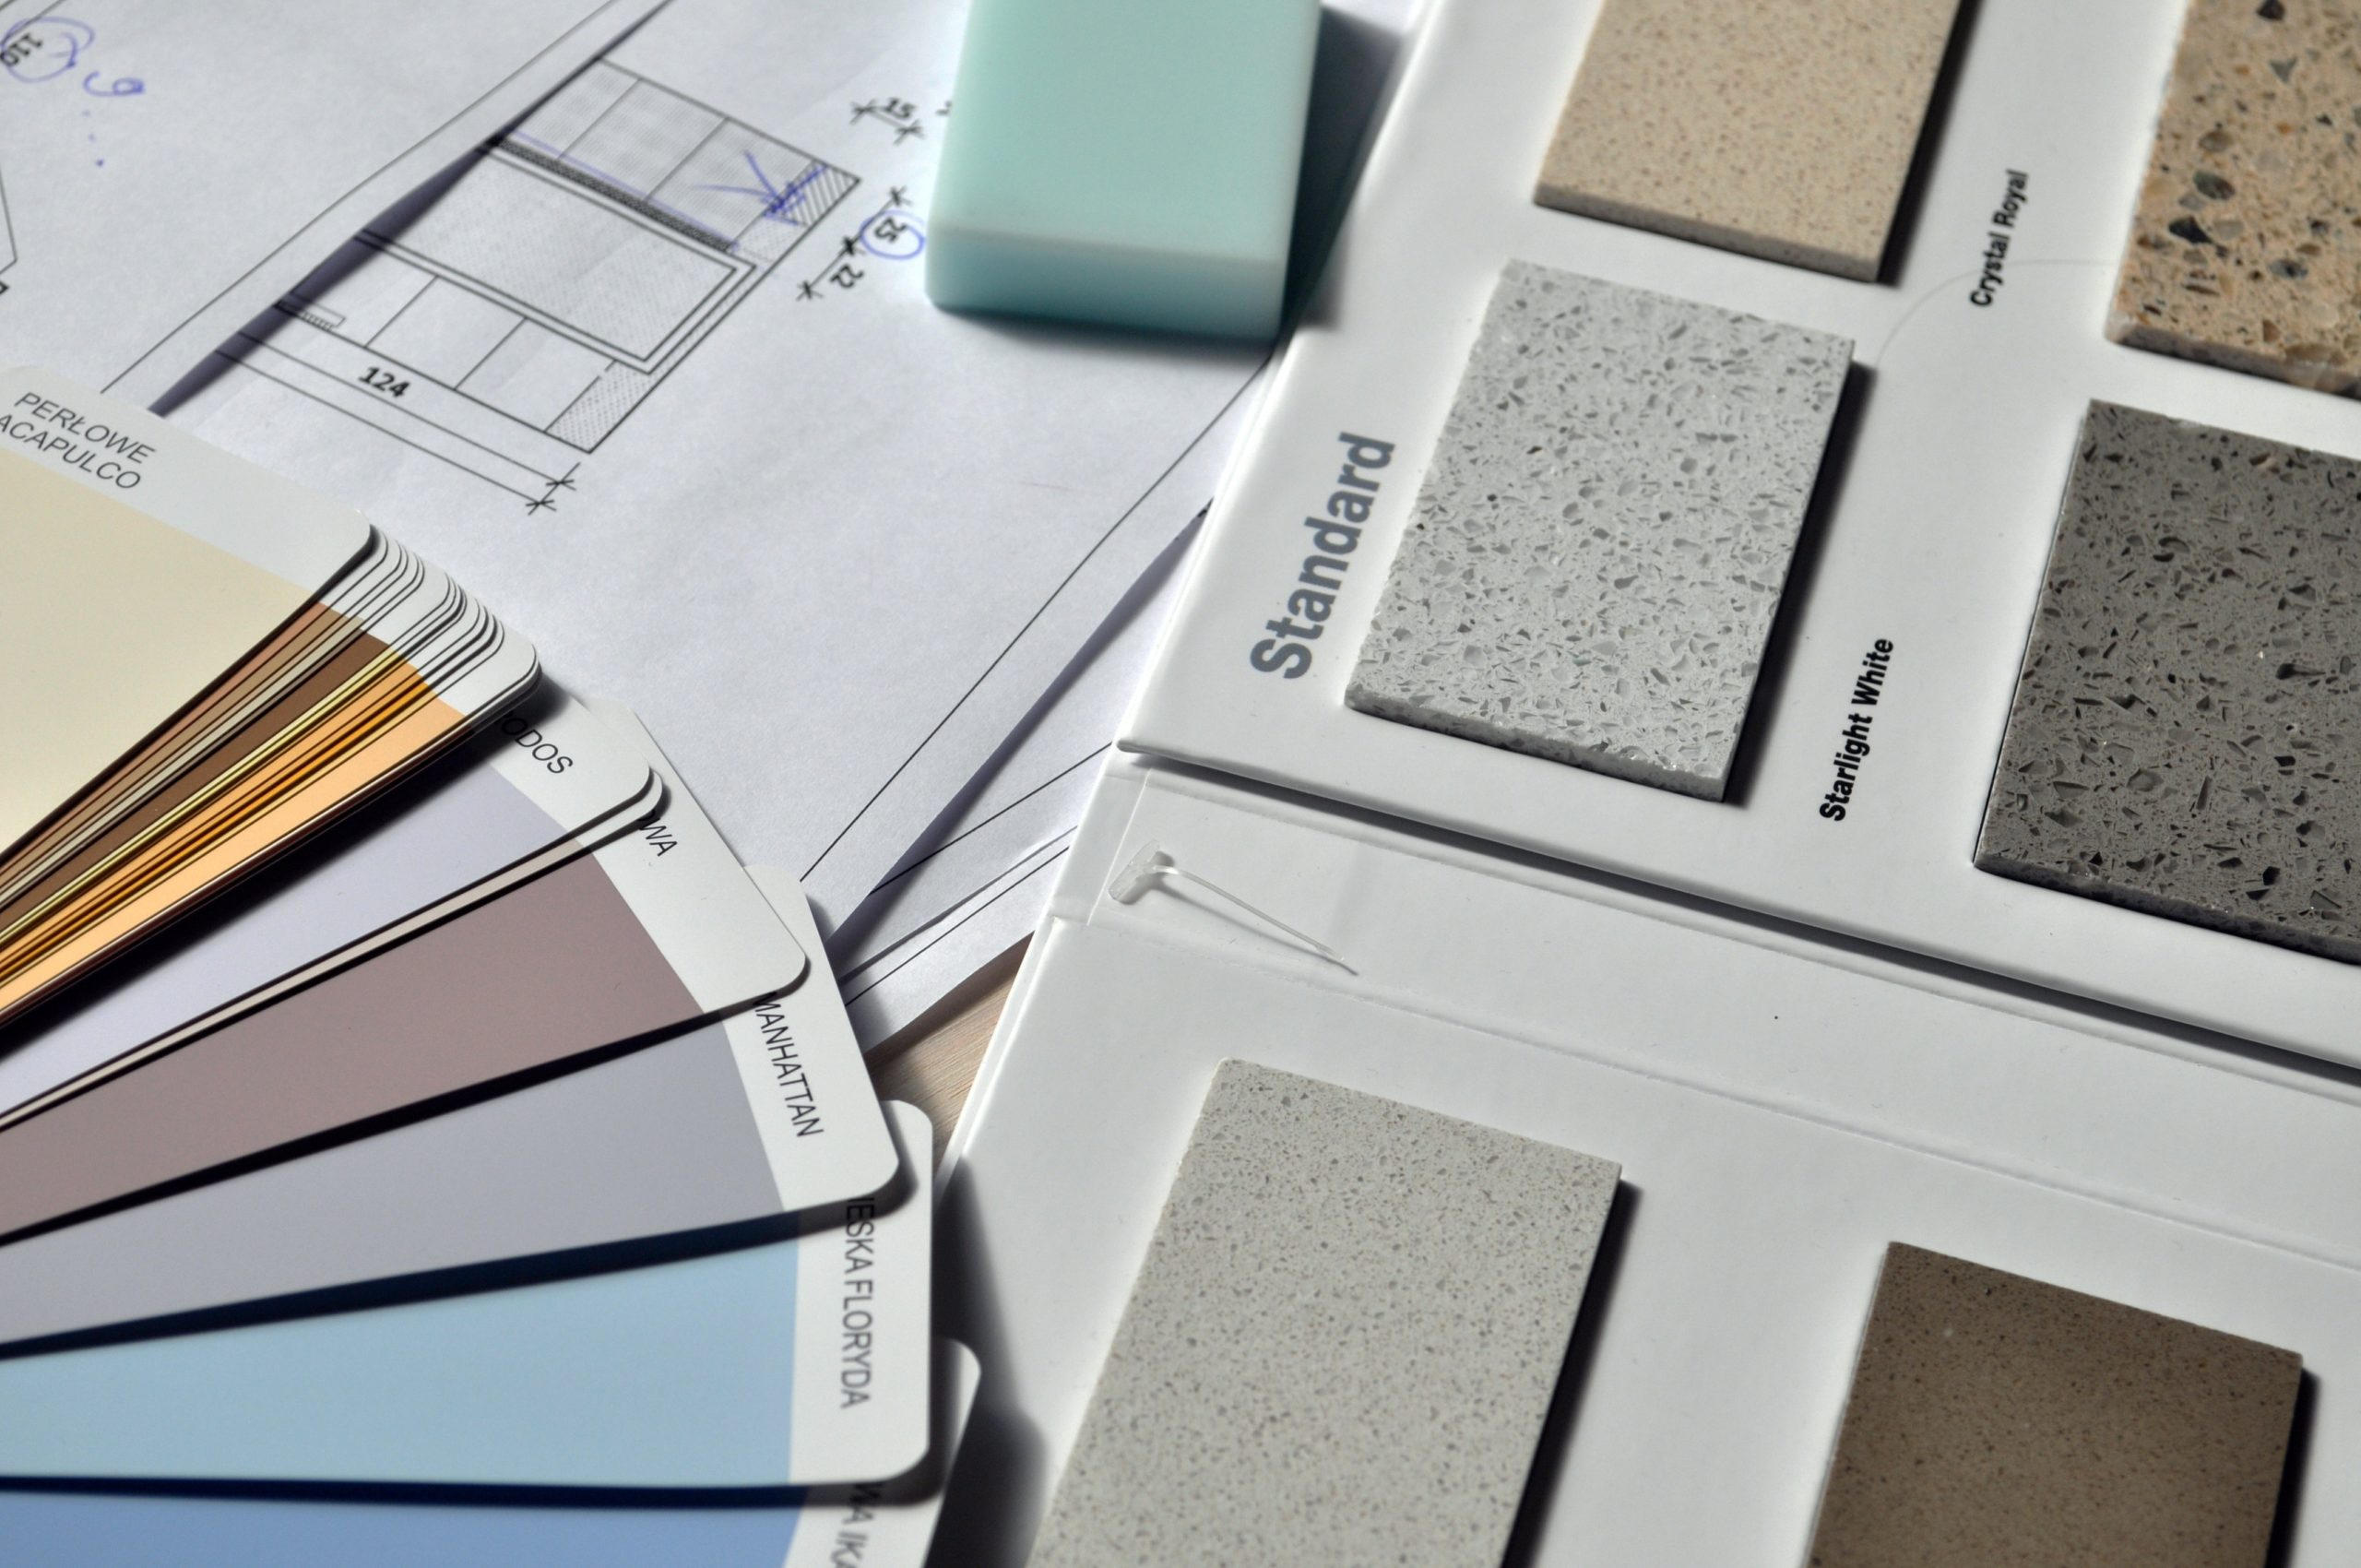 Paint swatches and flooring samples